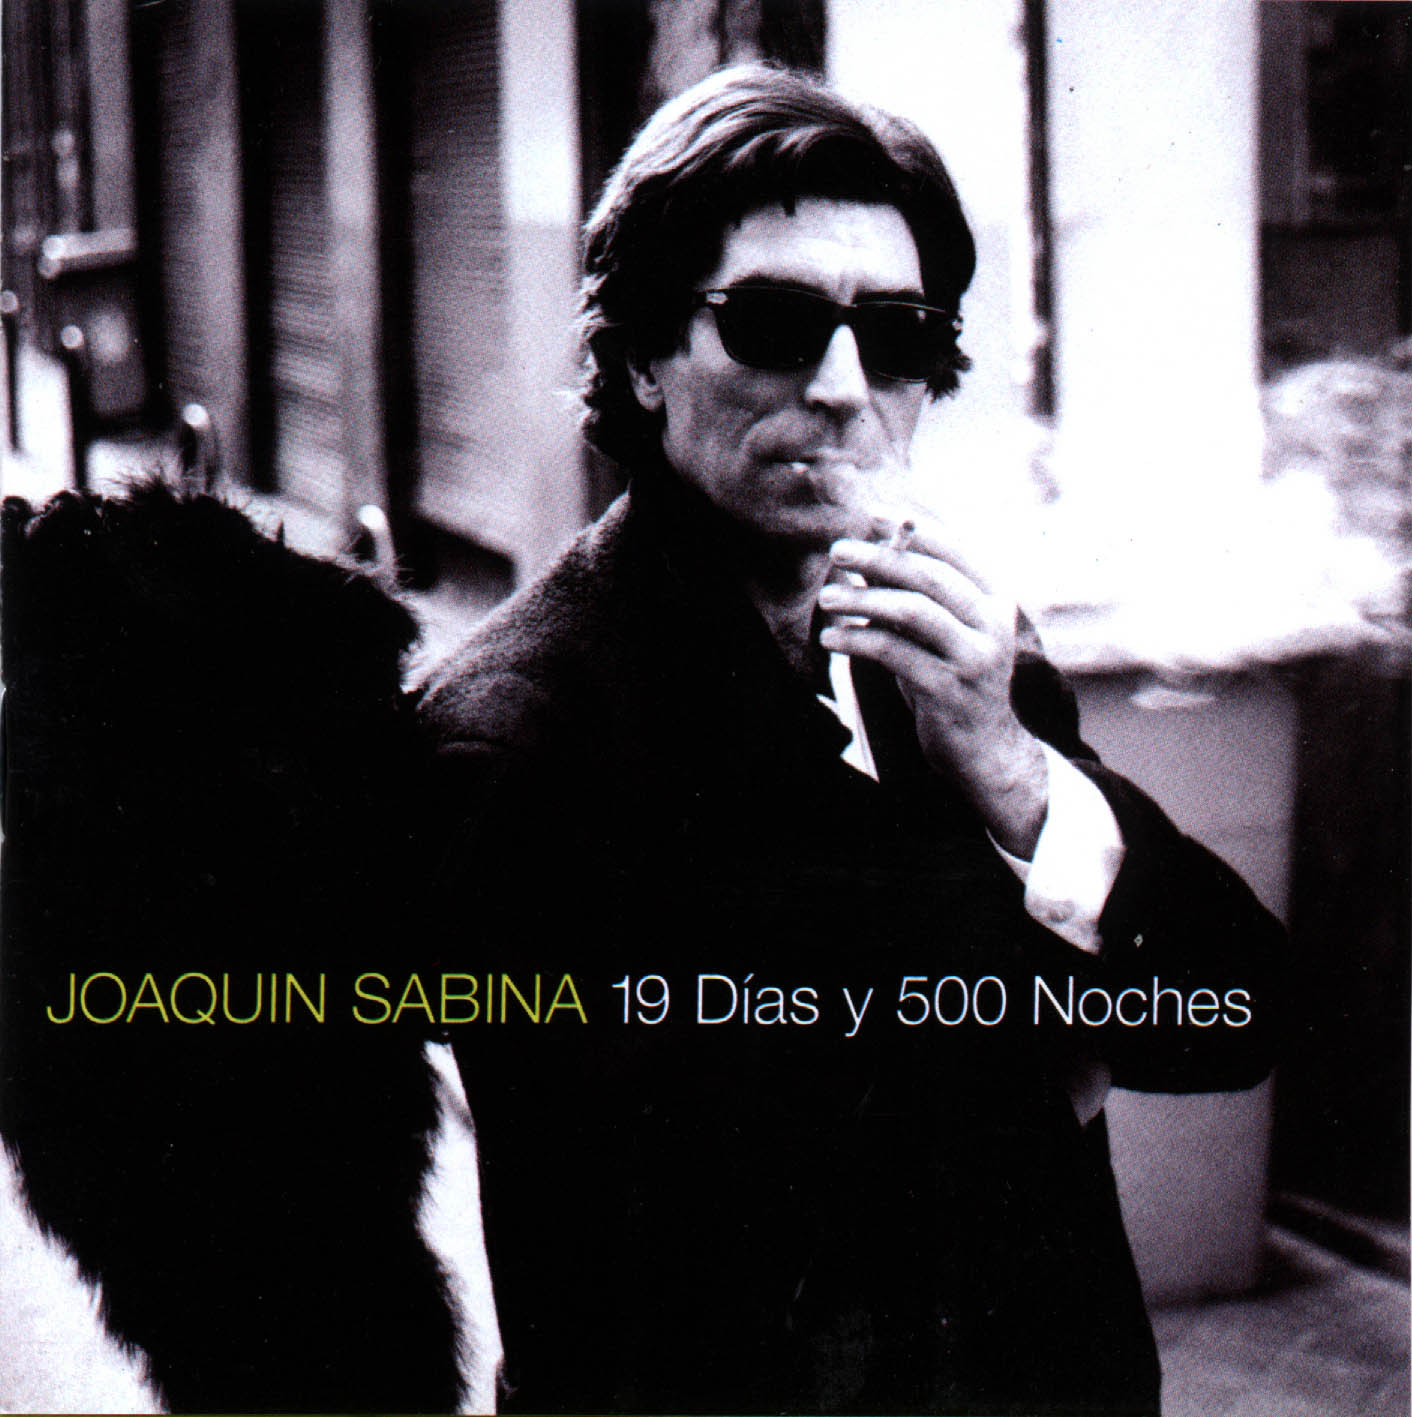 joaquin sabina Joaquín sabina tickets now available from €3850 as of 30 may 2018 - viagogo,  world's largest ticket marketplace - all tickets 100% guaranteed.